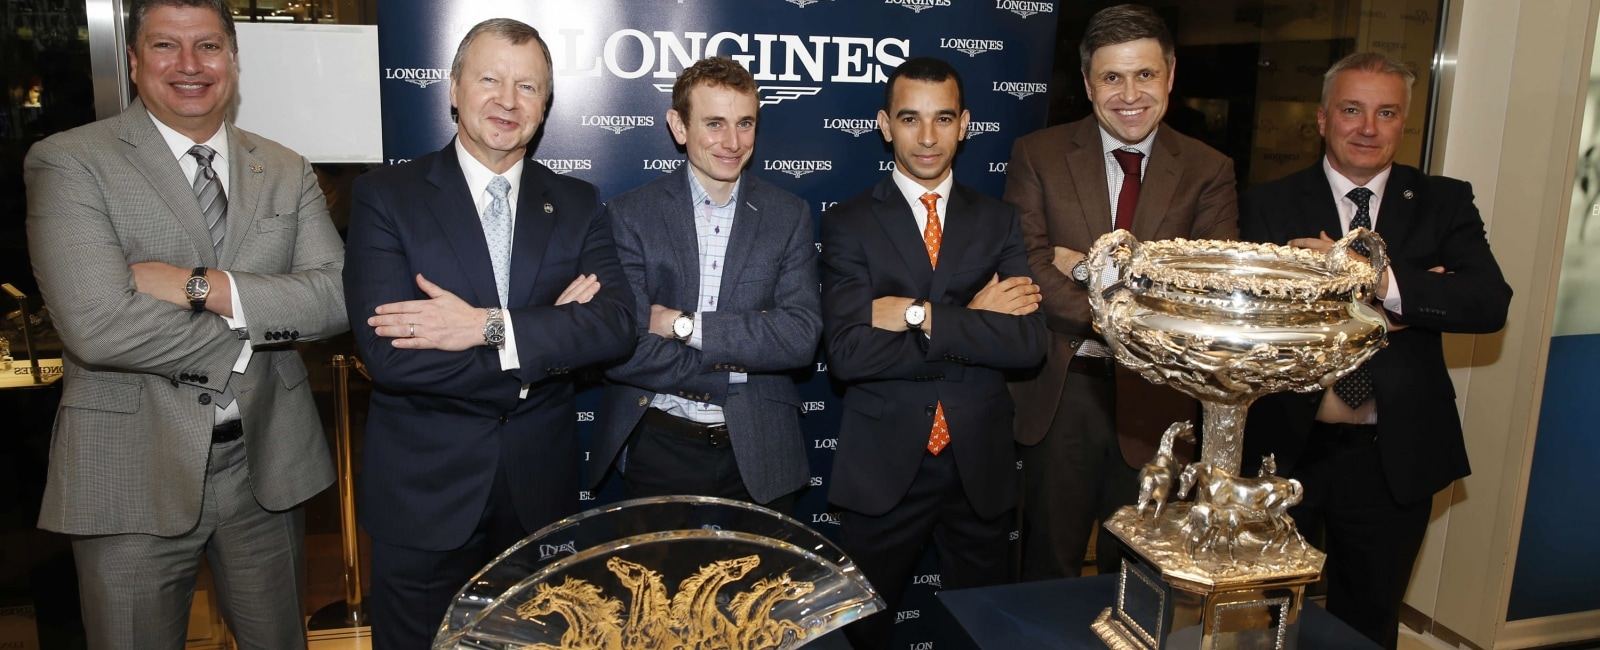 Longines Star House boutique in Hong Kong, Jockey, meet, Longines Hong Kong international Races, Trophy